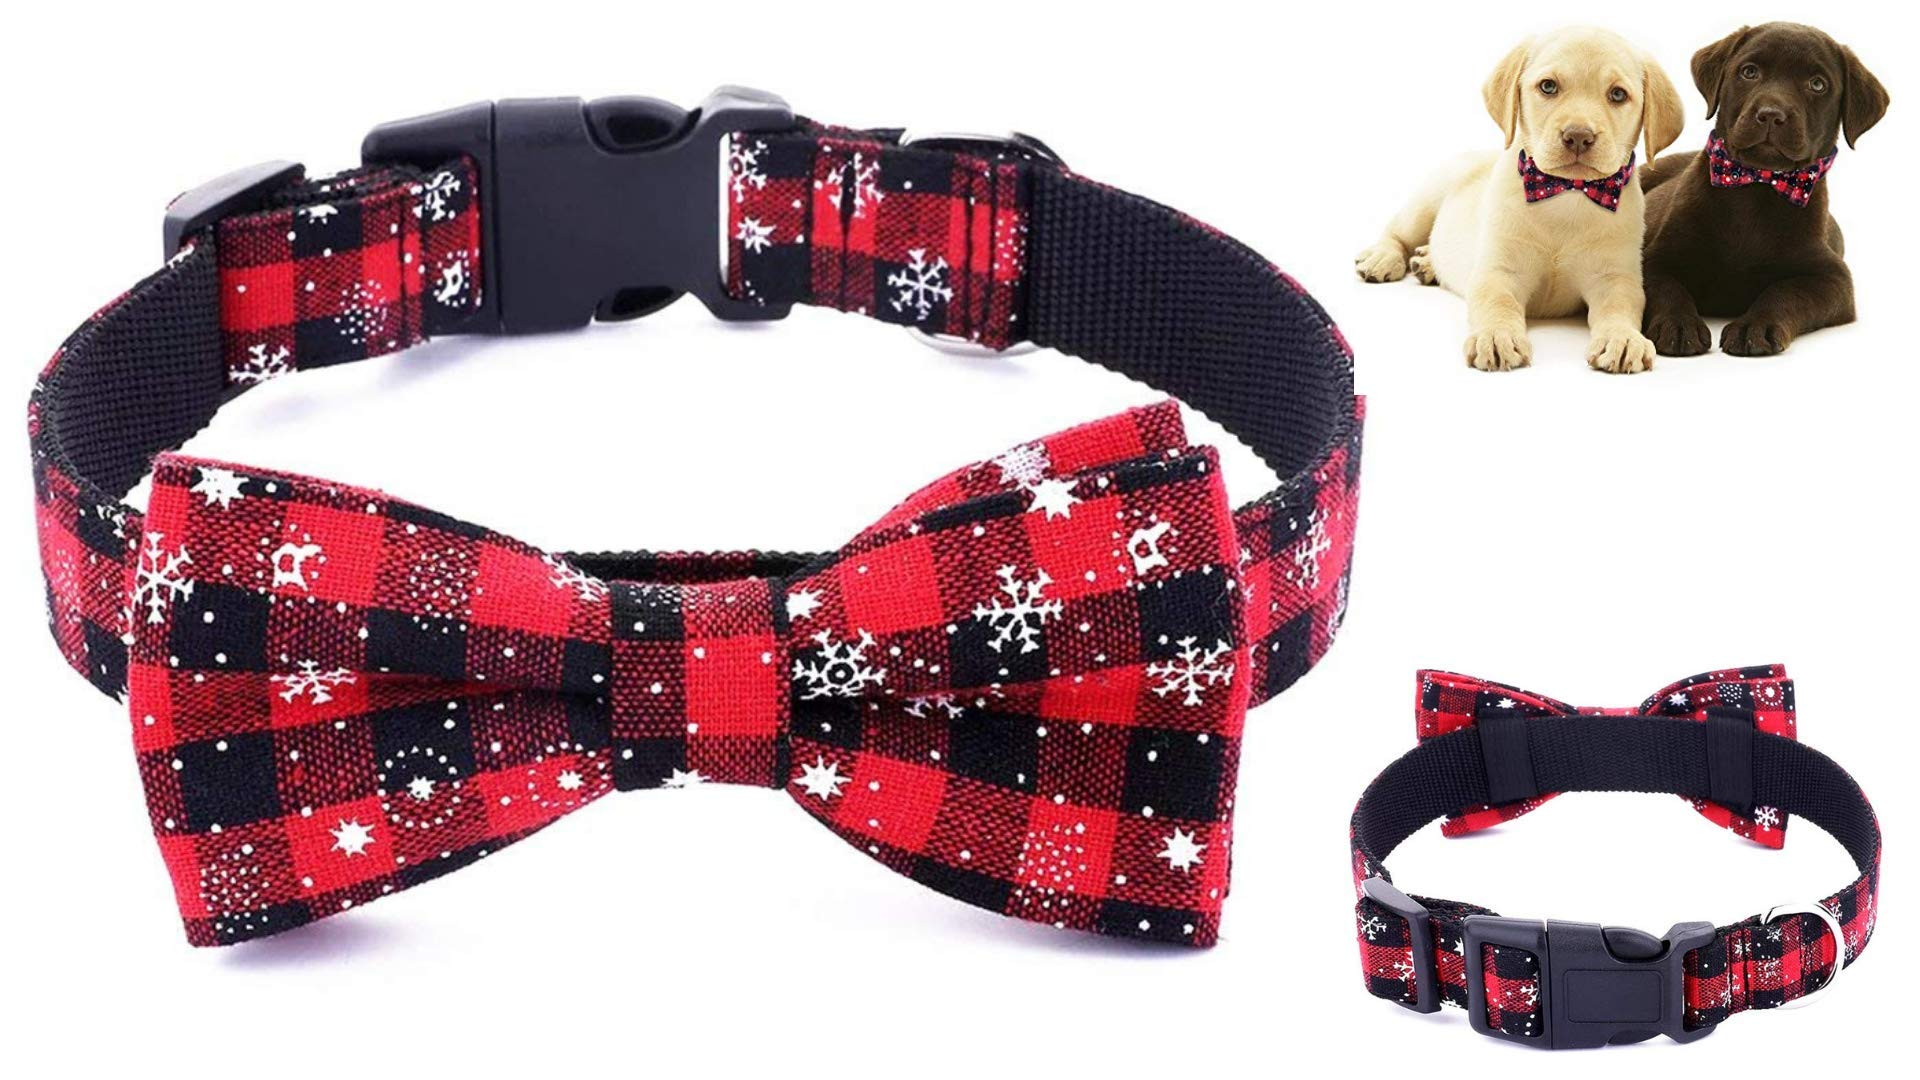 Dog Cat Collar | Dog Cat Bow Ties | Dog Collar | Cat Collar | Pet Gift | Christmas Pet Collar | Dog Bowtie Christmas | Red Colour |Collar Length 13.5"|1920|1080|?|ee0c1f2c8ac77434704c6d62ac5f1155|True|False|UNLIKELY|0.3375663459300995